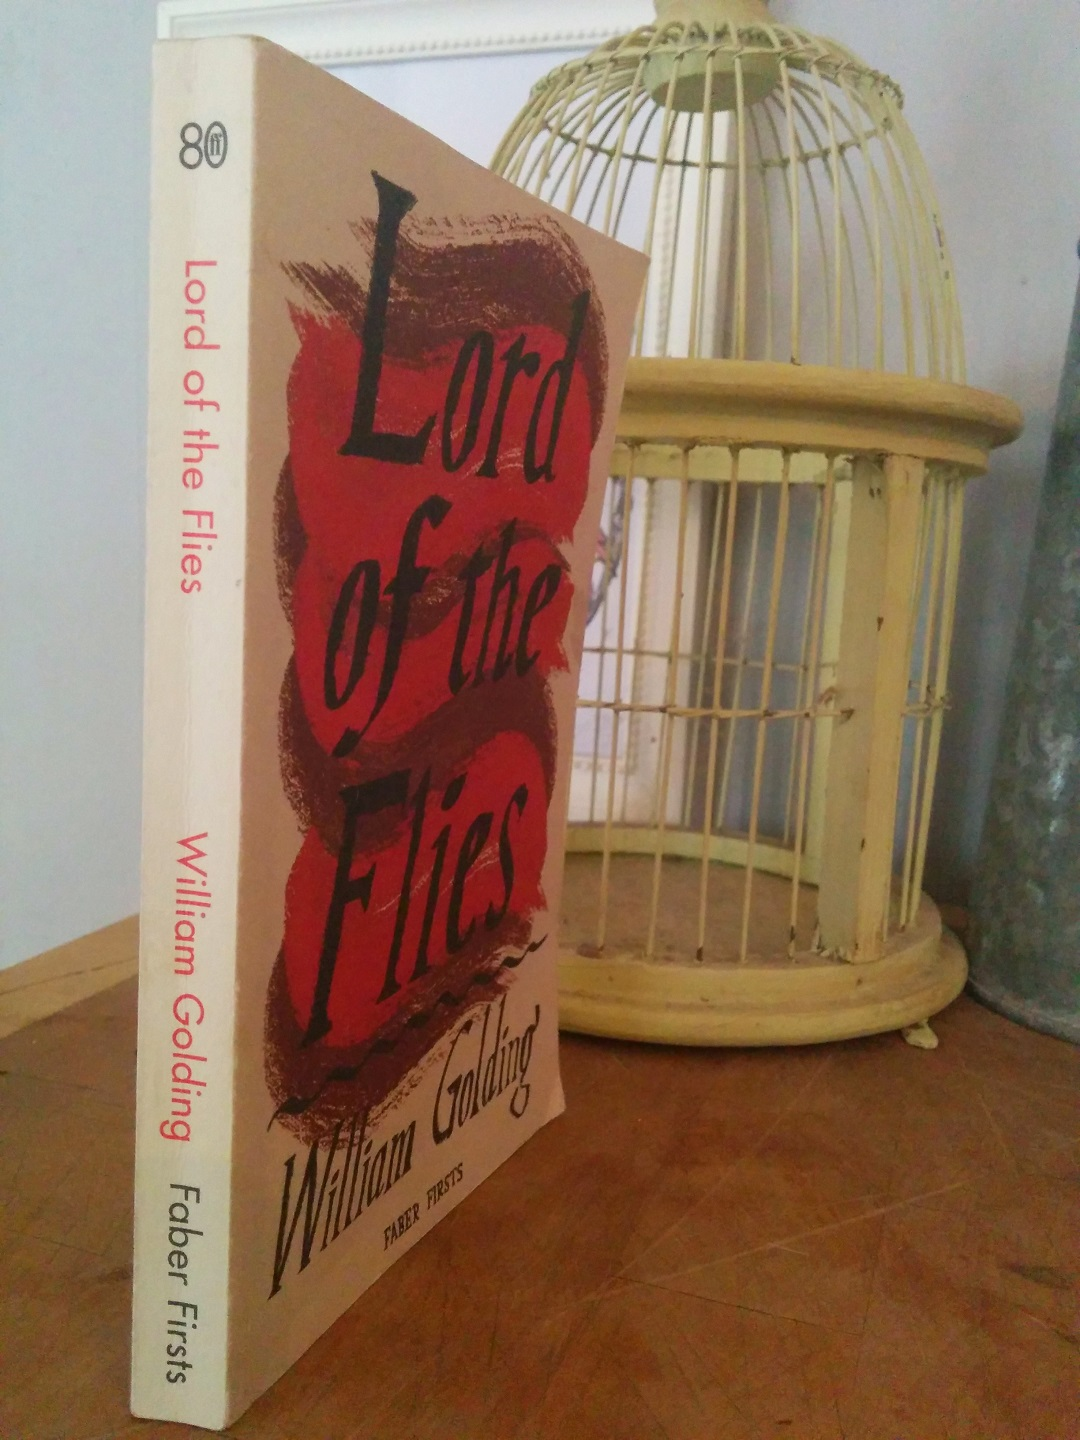 lord of the flies book essay Lord of the flies (book report) essays: over 180,000 lord of the flies (book report) essays, lord of the flies (book report) term papers, lord of the flies (book.